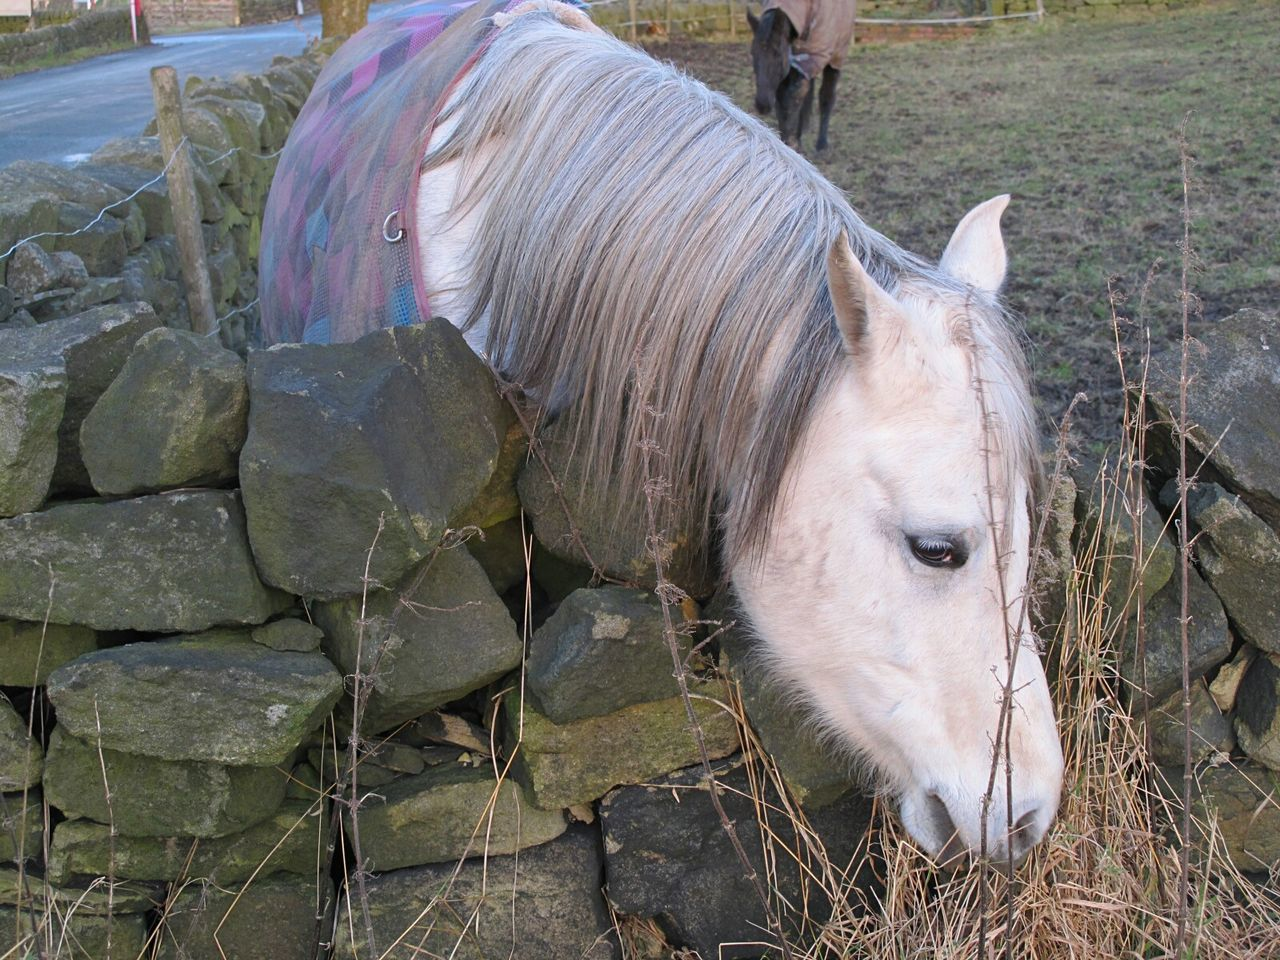 Animal Themes Mammal Domestic Animals One Animal Livestock No People Outdoors Day Nature Horses_of_instagram EyeEmbestshots. Eyeemphotography Tranquil Scene Outdoors Valleyside Winter Cold Temperature Fine Art Photograhy Horse Field Landscape Scenics Dusk Moorland Beauty In Nature Grass